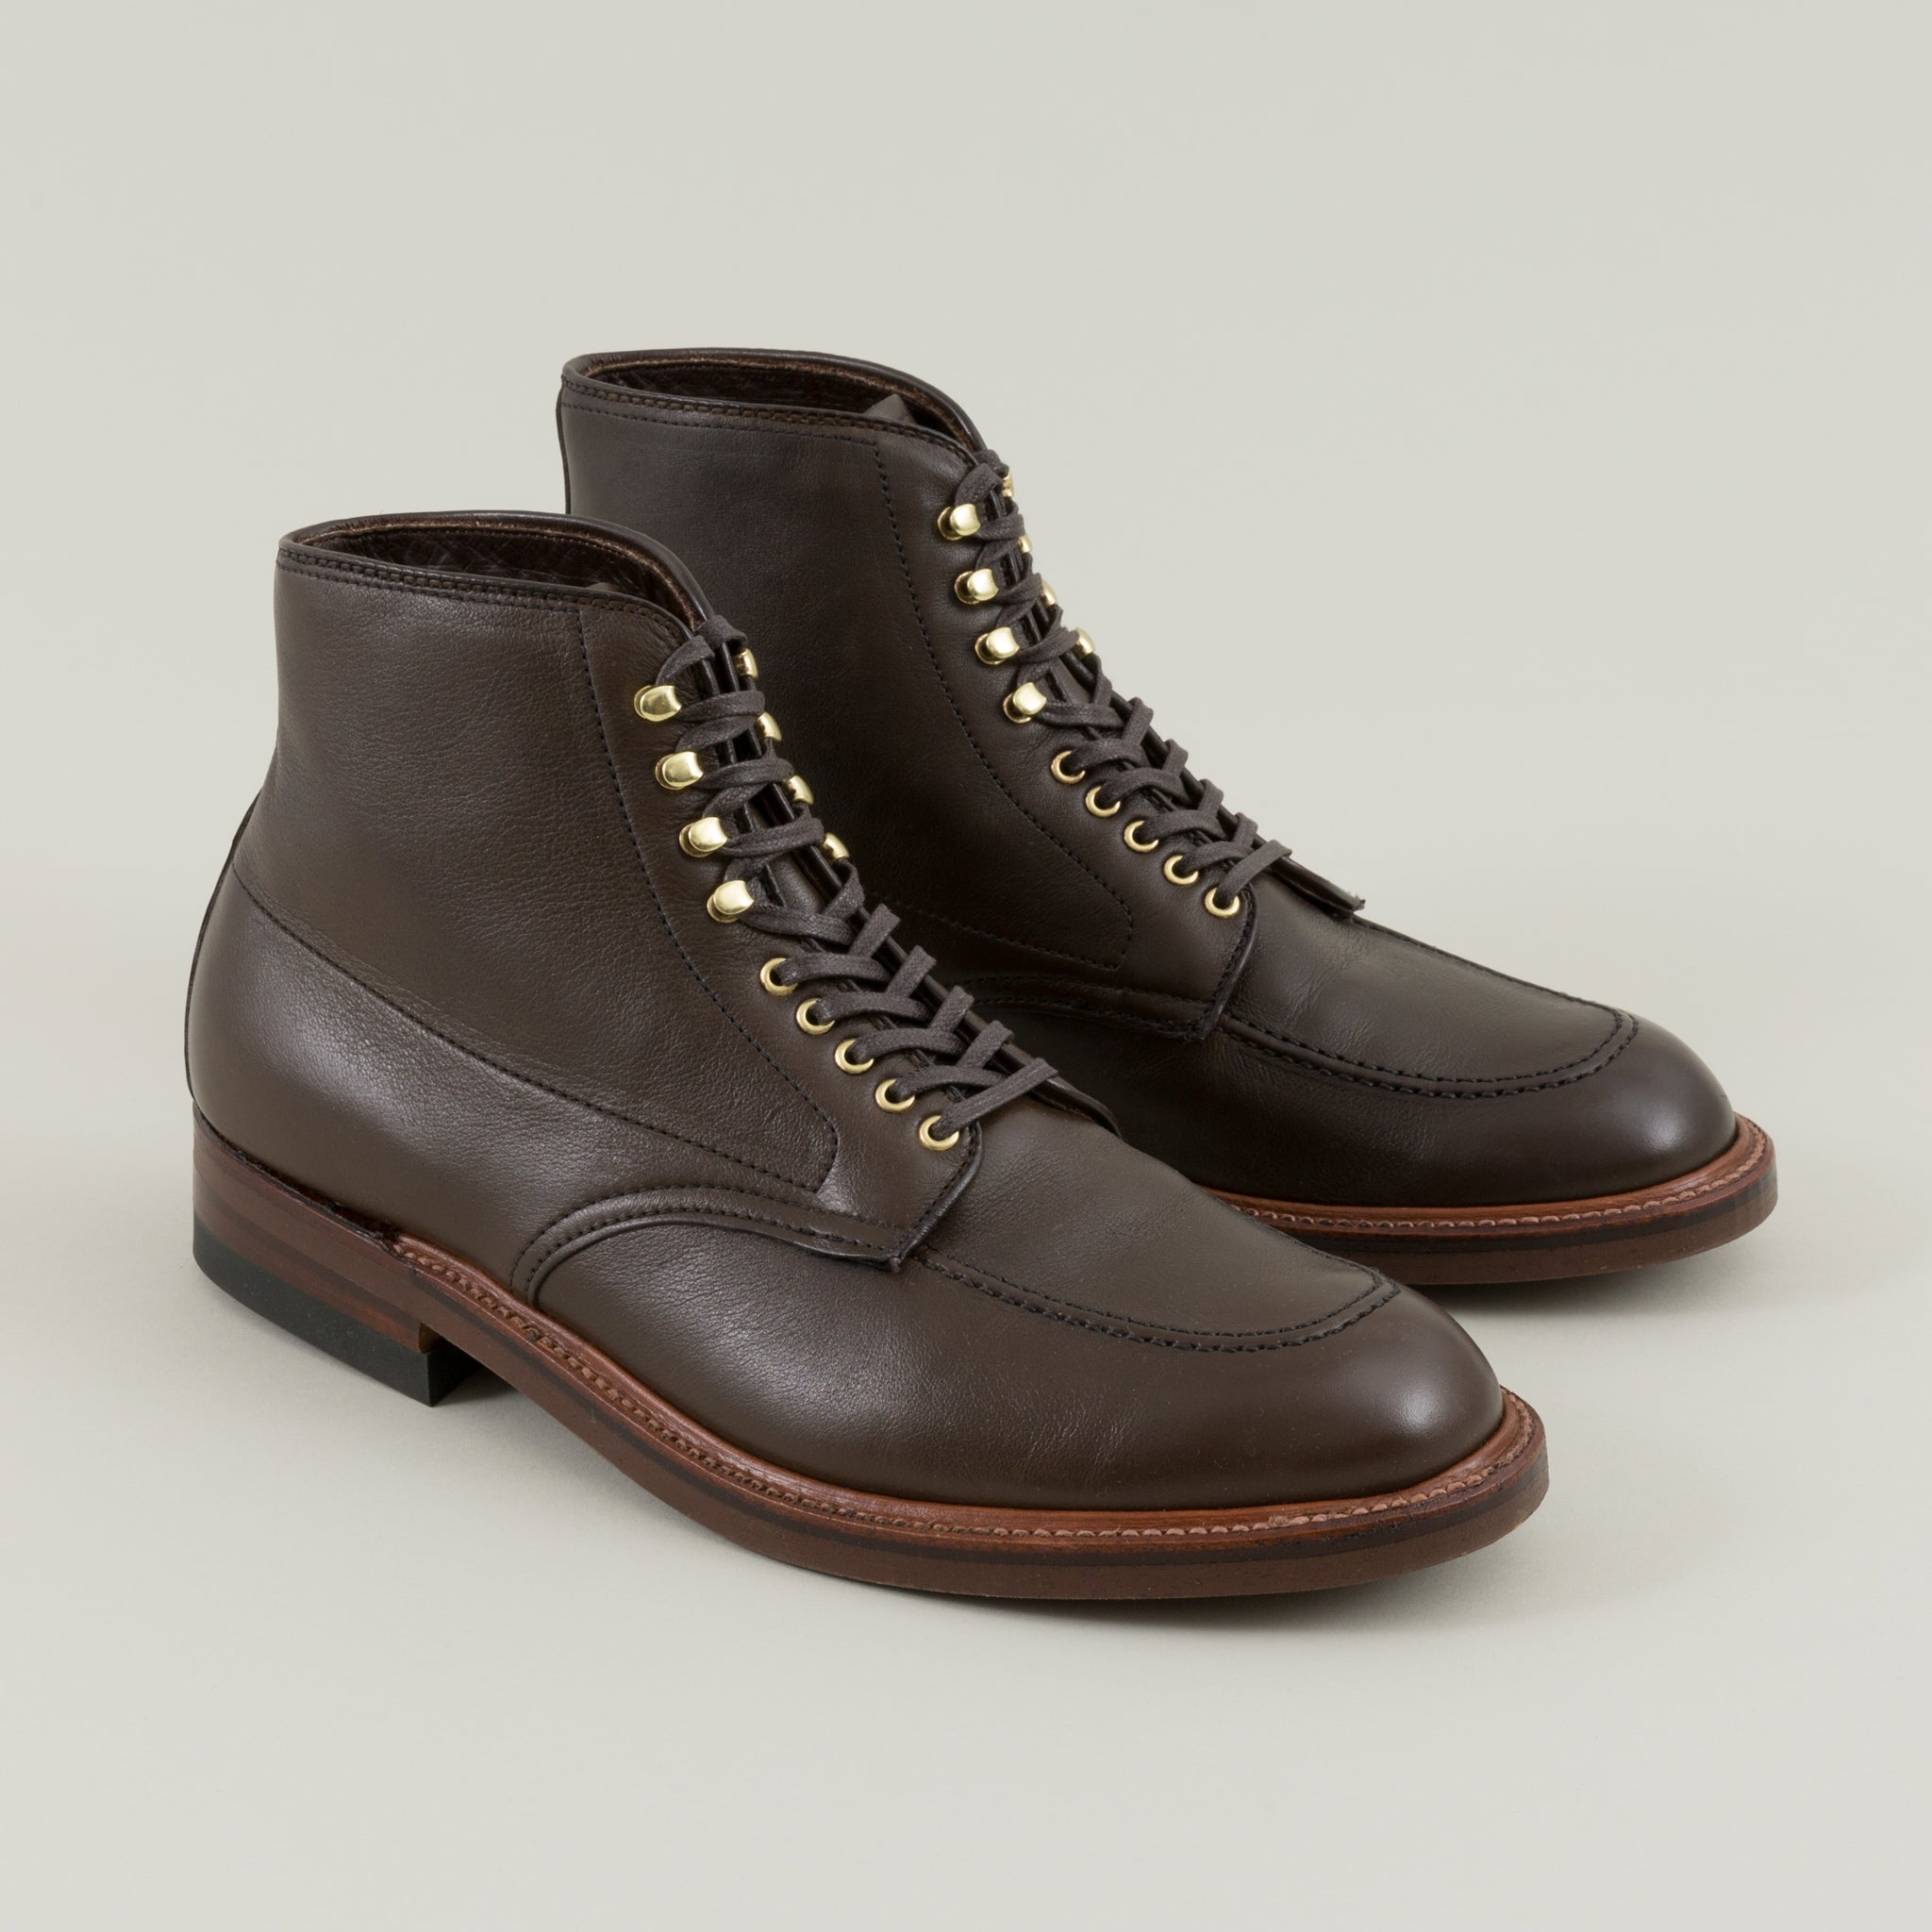 747a4e41421 Indy Boot, Olive Brown Calfskin